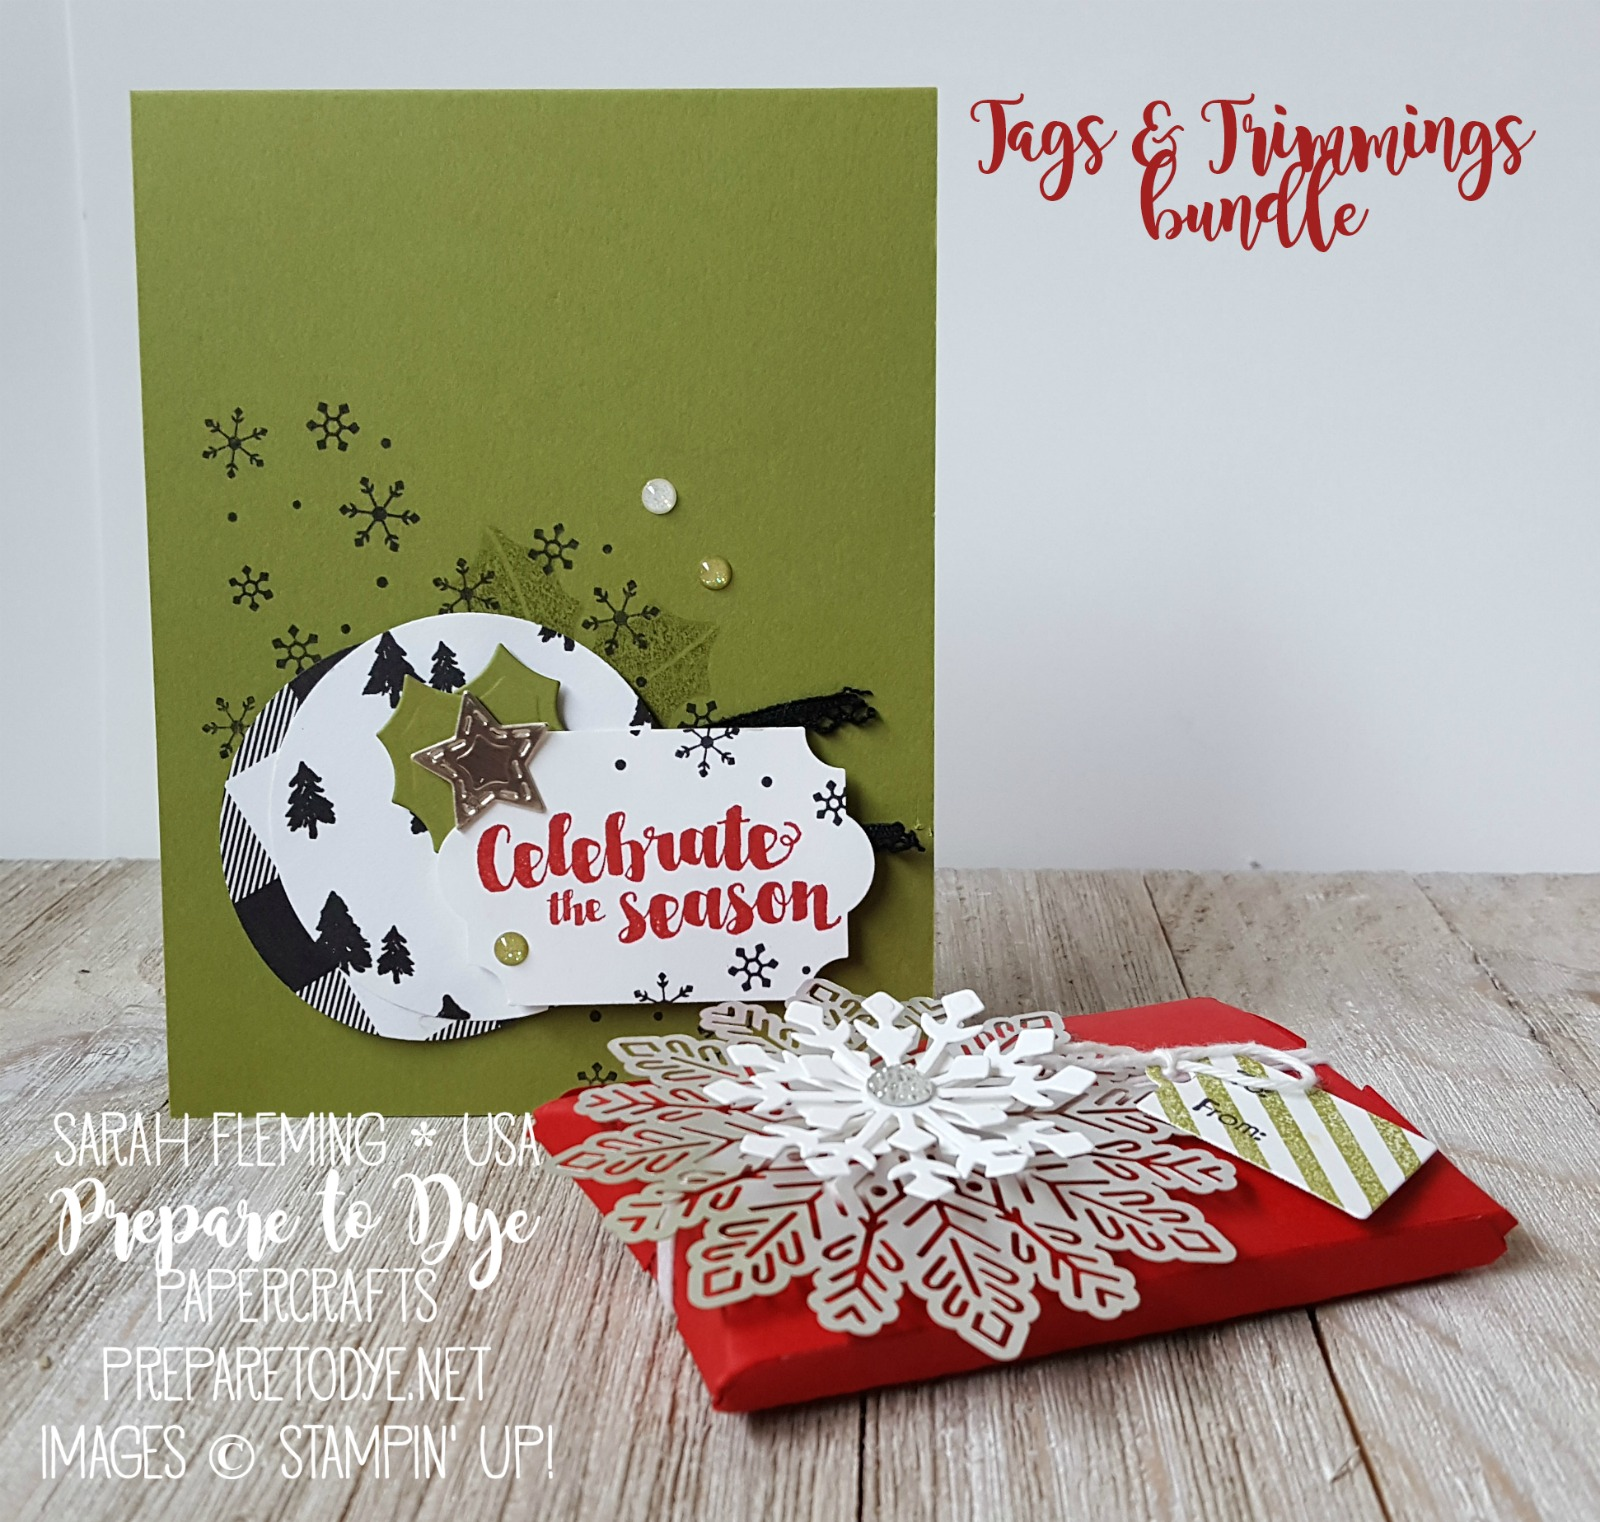 Stampin' Up! Tags & Trimmings bundle with Trim Your Stocking thinlits, Foil Snowflakes, Merry Little Christmas paper - Sarah Fleming - Prepare to Dye Papercrafts - stampinup #6monthstampingoals #aimforalaska